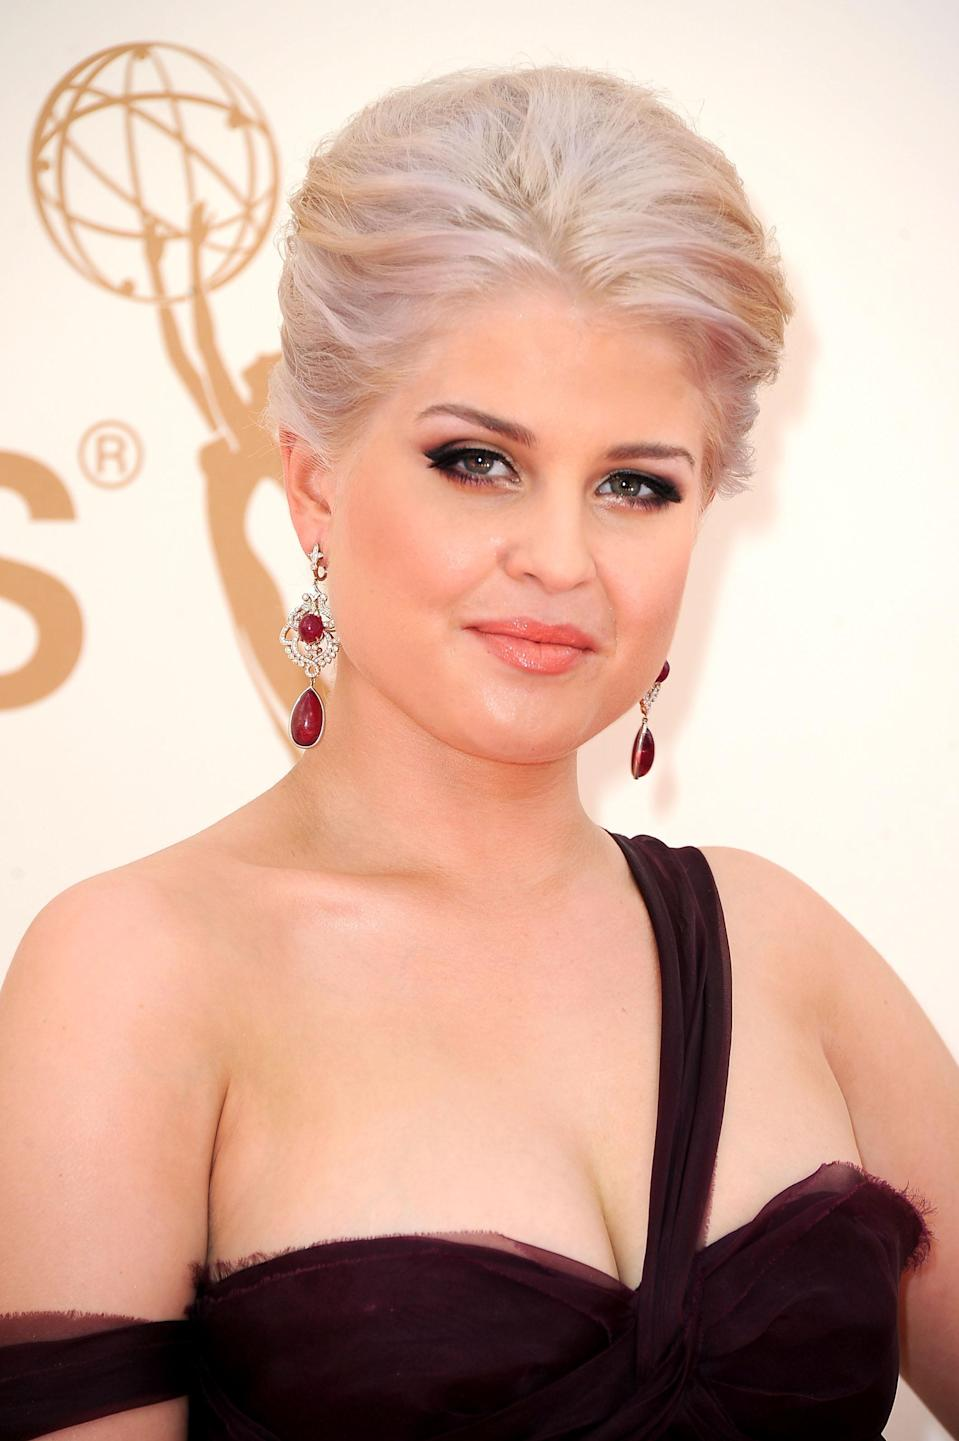 <p>Kelly Osbourne's classy updo gives her rendition of silver hair an enchanting glow. (Photo: Getty Images) </p>